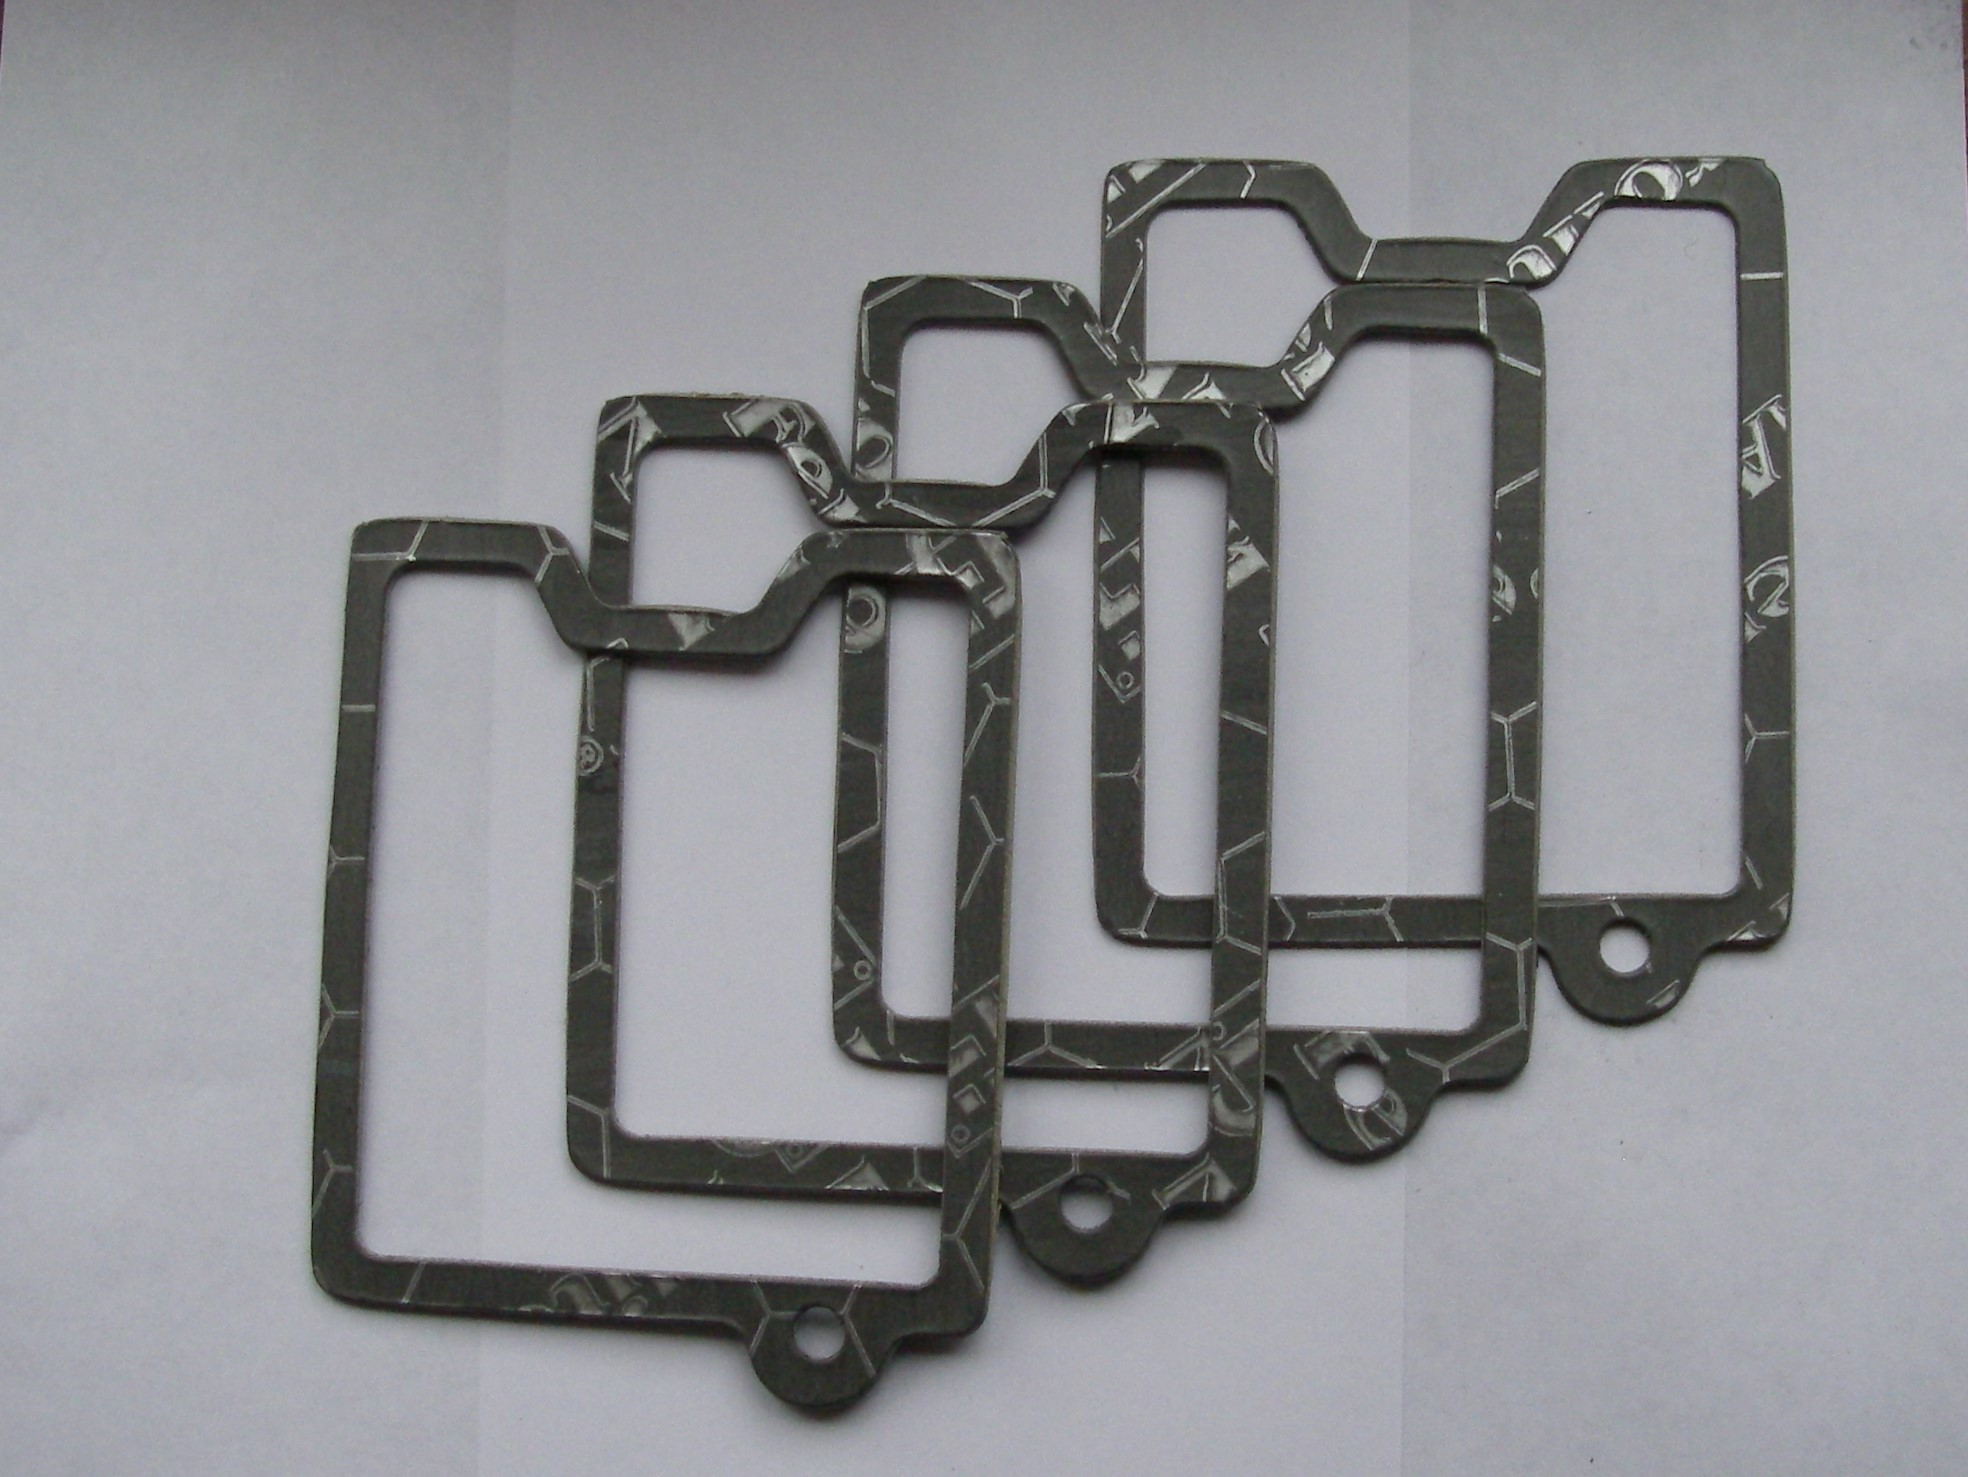 <b>Lister LPA4/LPW4 Rocker Cover Gaskets  :</b>